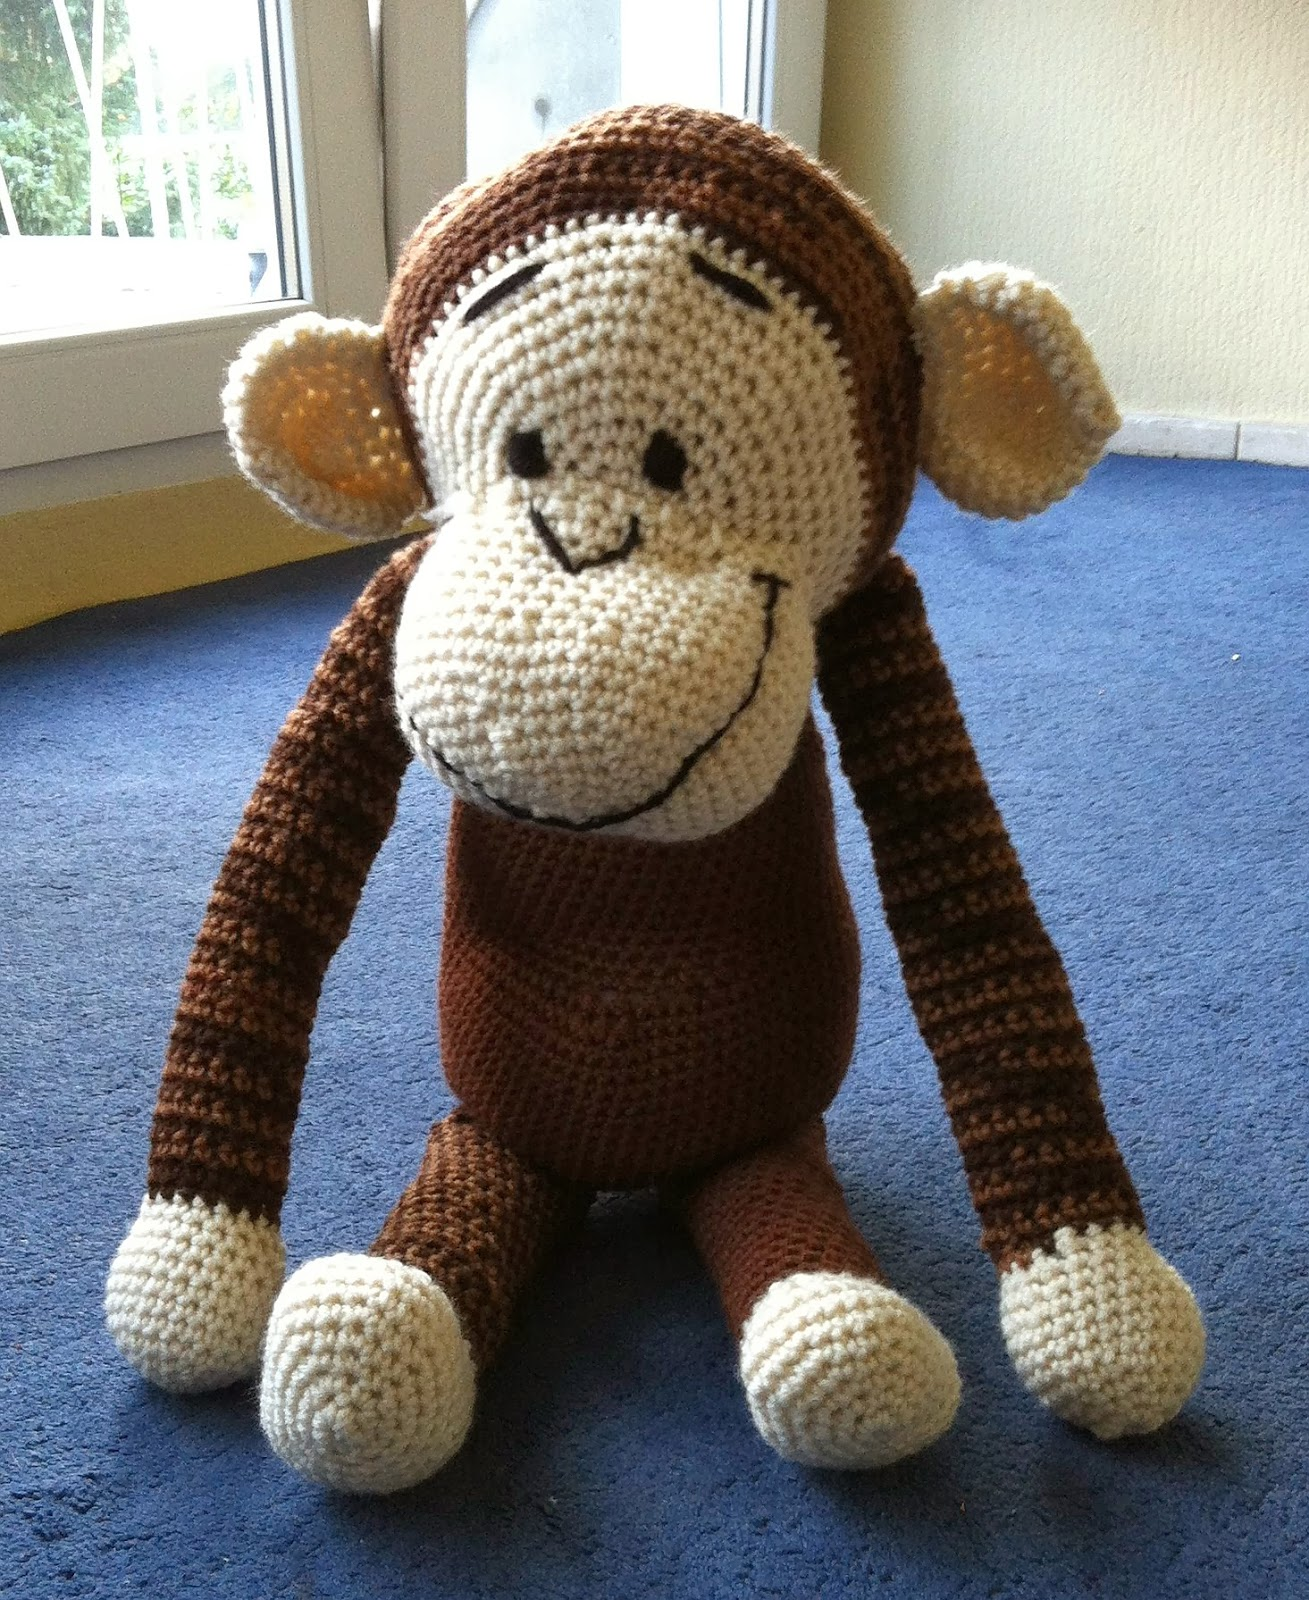 Amigurumi Go Monkey : Crochet Crazy: Mr. Monkey -- My First and Only Attempt (So ...